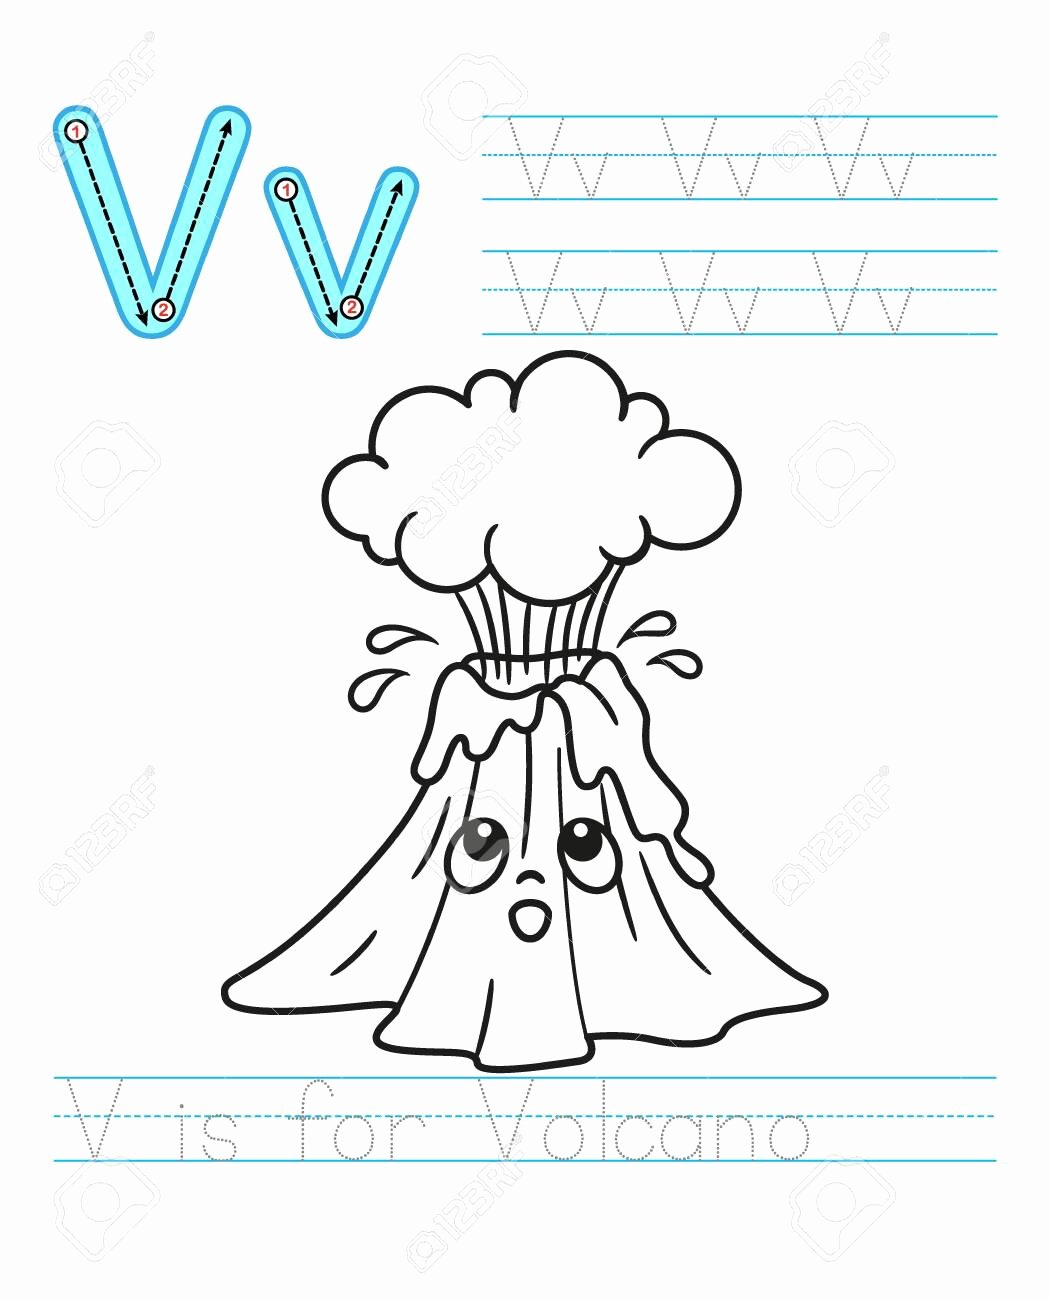 Volcano Worksheets for Preschoolers top Coloring Book Page Printable Worksheet for Kindergarten and